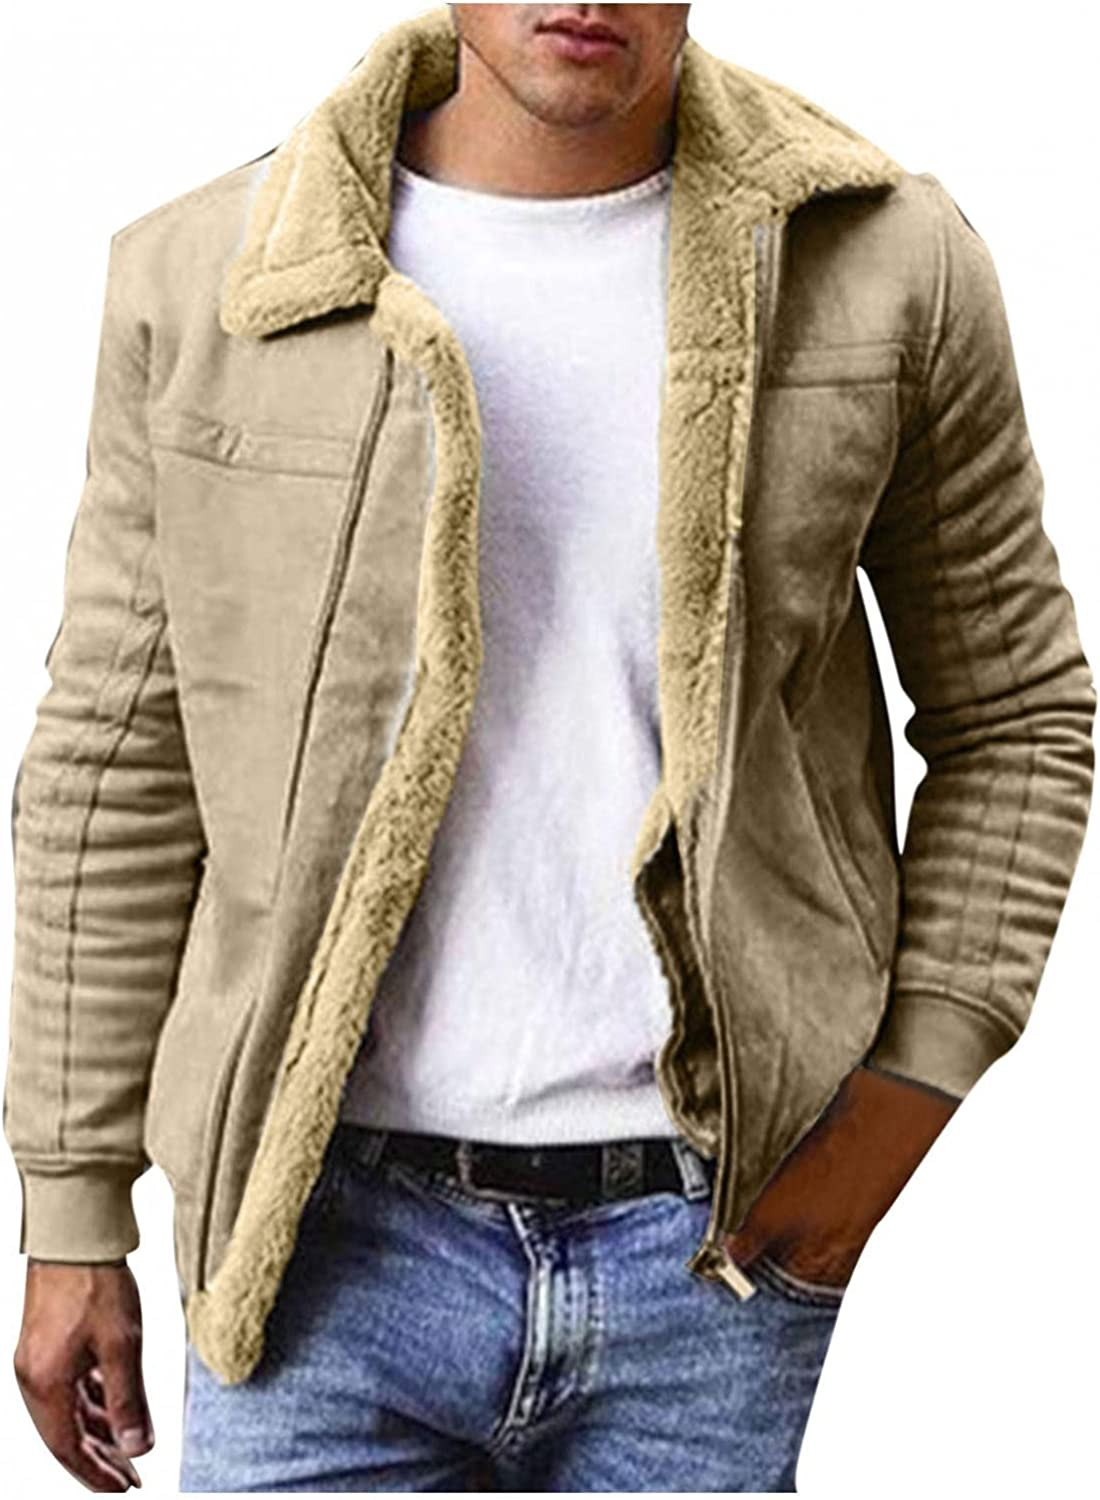 Huangse Plus Size Vintage Slim Fit Jacket for Men Casual Thick Fleece Sherpa Lined Button Front Corduroy Trucker Jackets